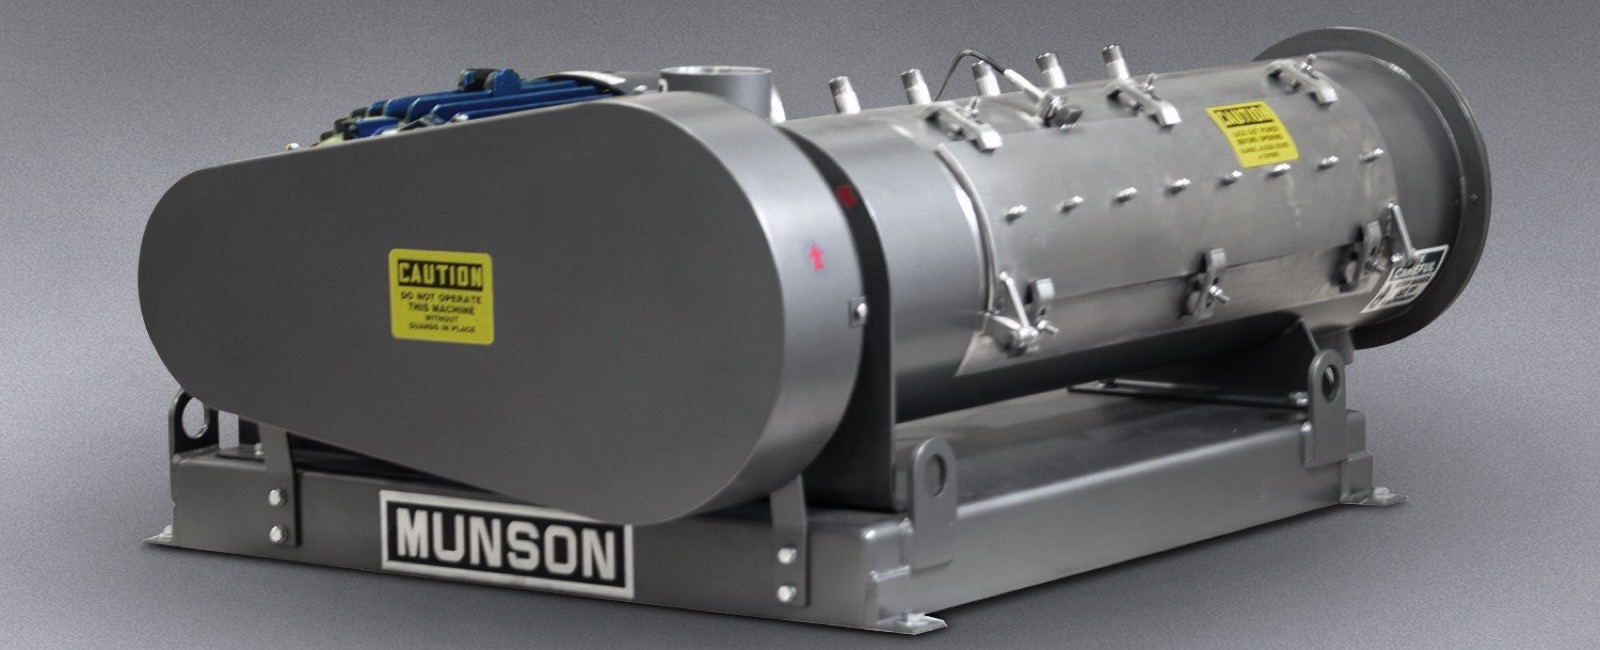 Munson Machinery: Variable Intensity Continuous Blender for Pastes, Slurries